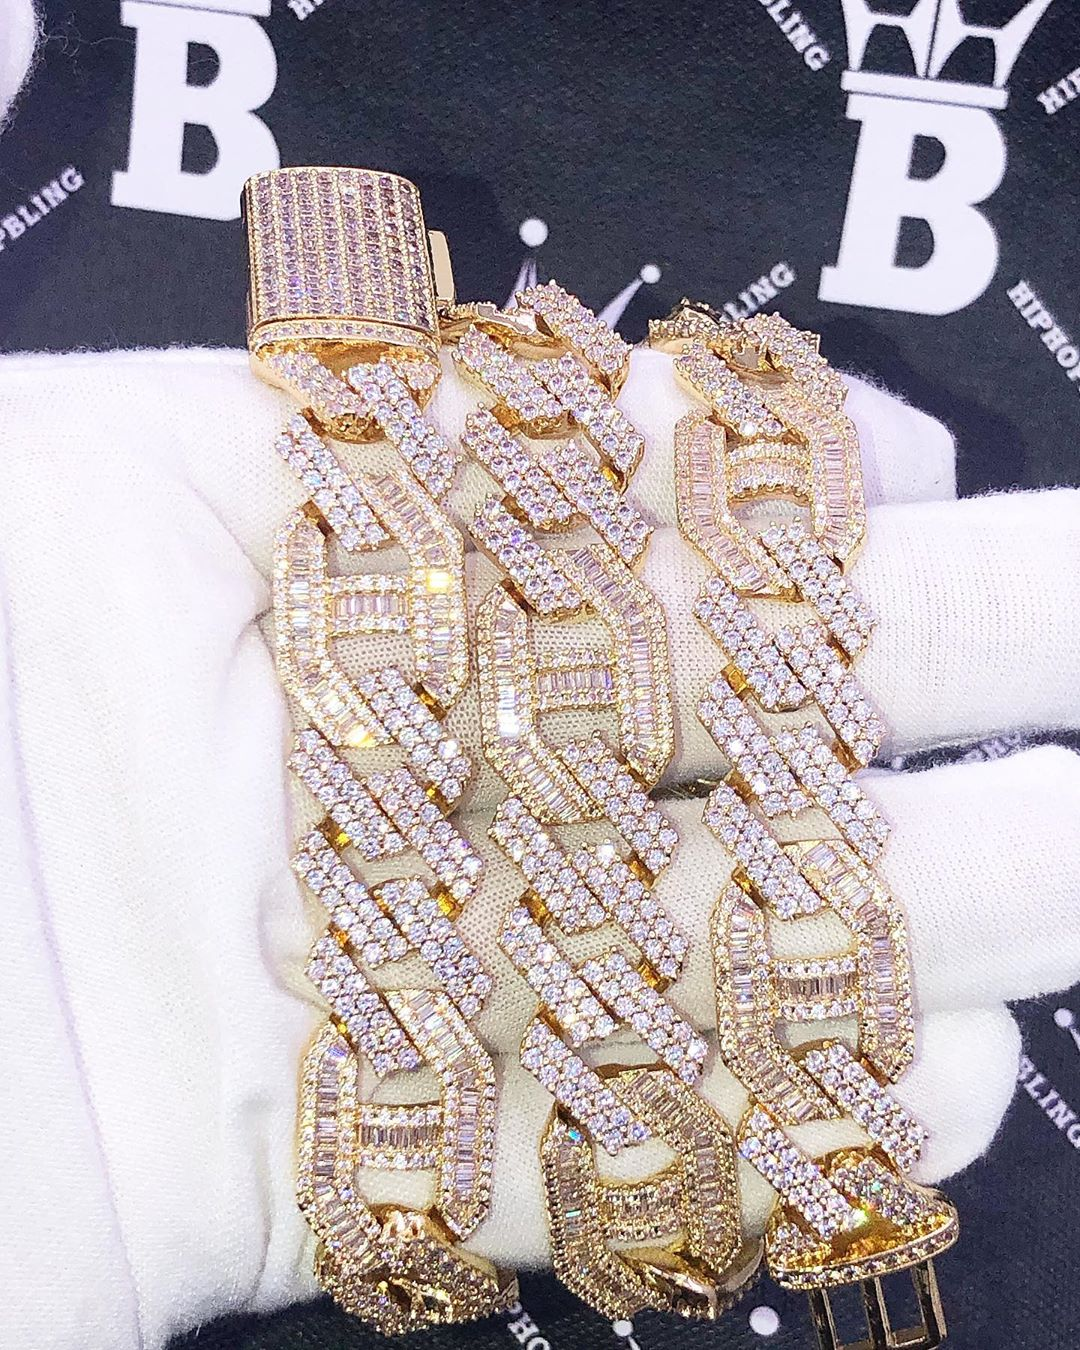 Order your own iced out chains and custom jewelry today from HipHopBling.com